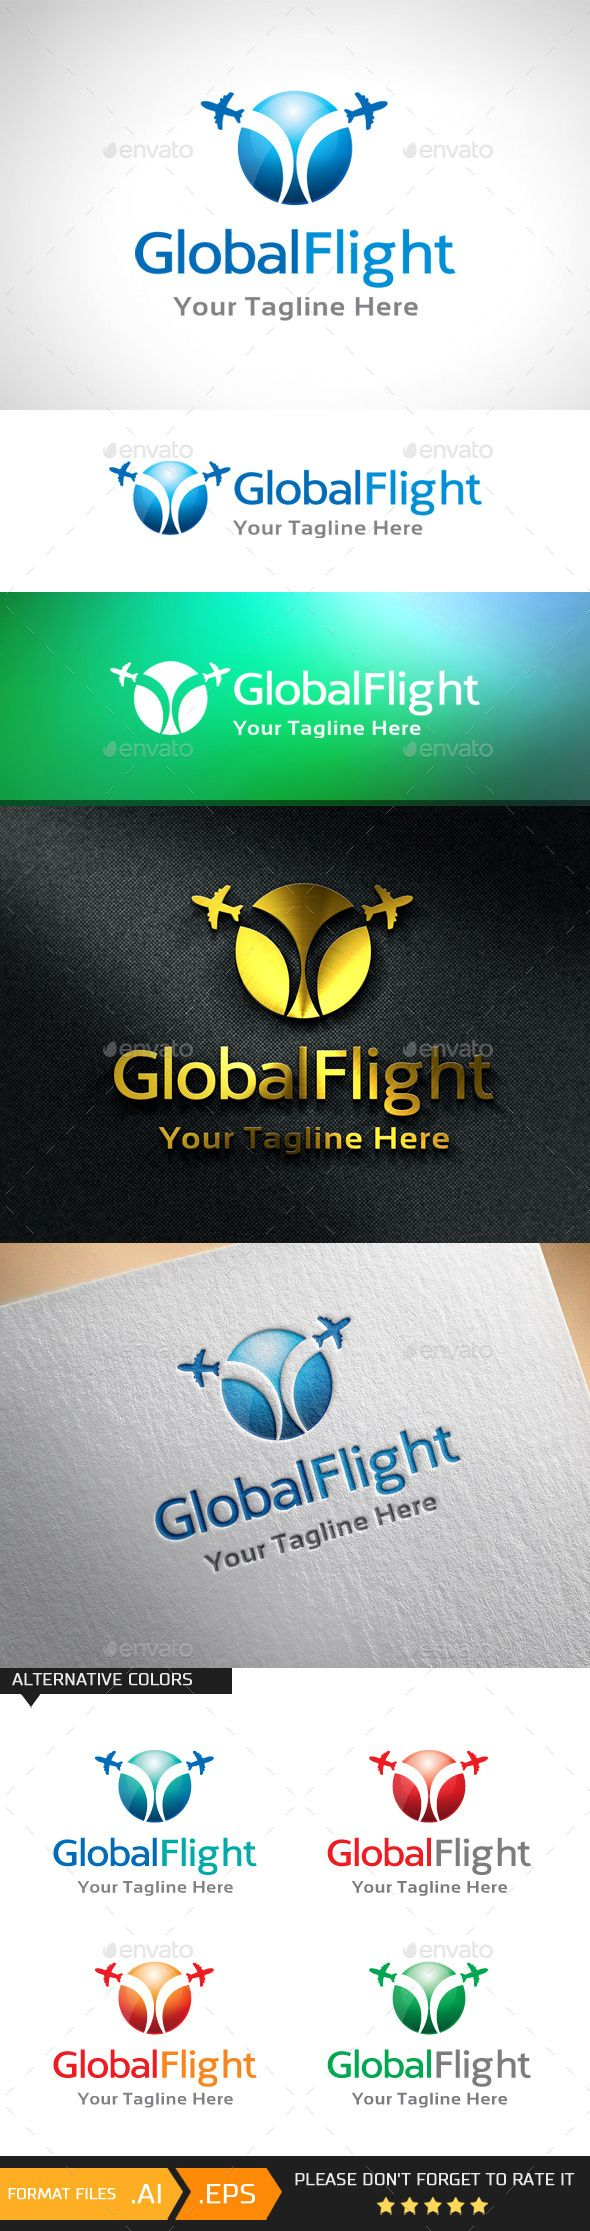 Global Flight Logo Template (AI Illustrator, Resizable, CS3, air, aircraft, airplane, app, application, computer, destination, flight, global, info, information, journey, location, logo, maps, mobile, online, phone, plane, point, resort, software, spot, ticket, tickets, travel, traveler, trip, tropical, vacation)